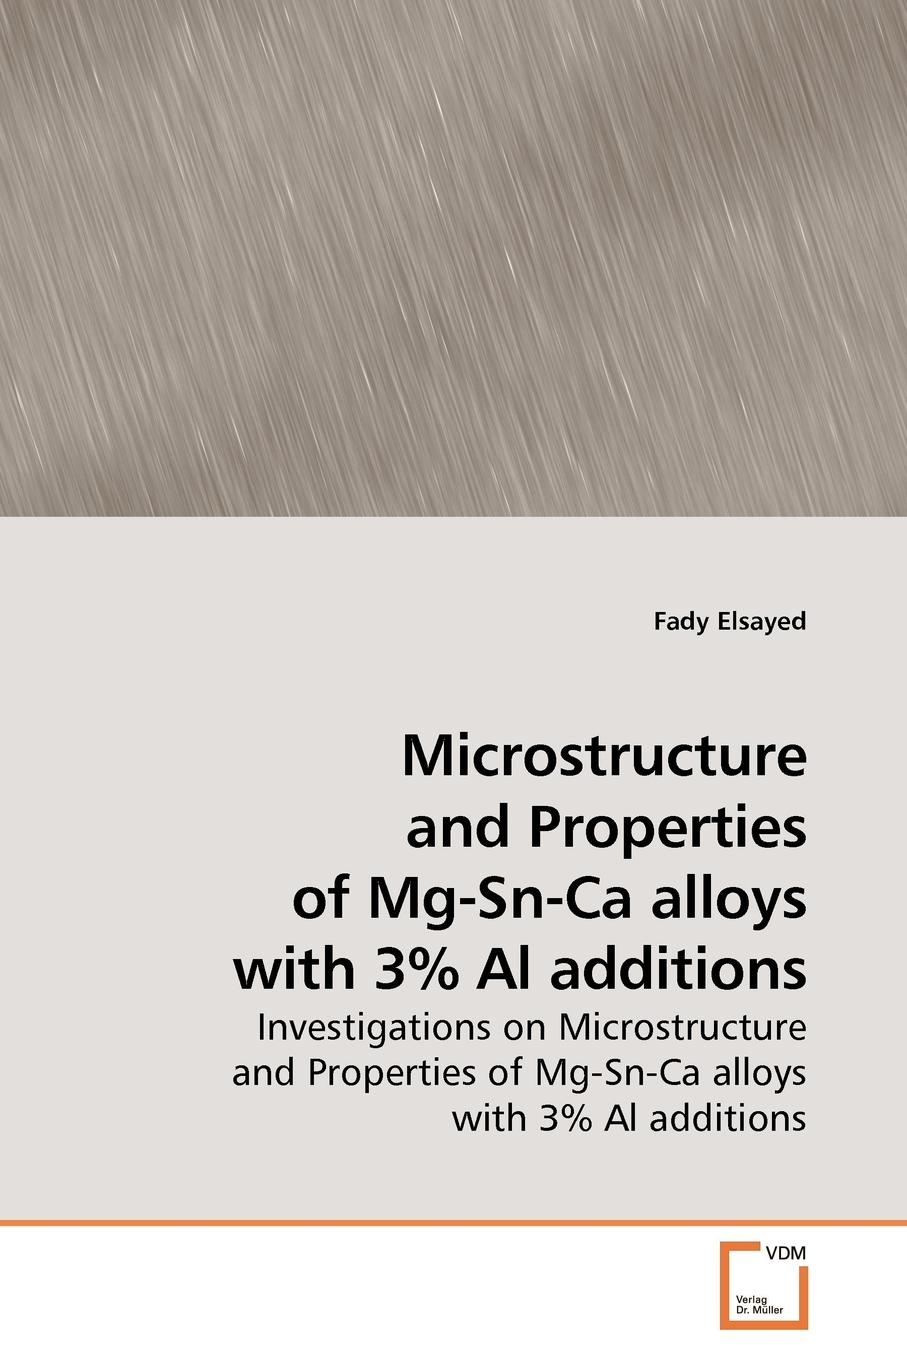 Fady Elsayed Microstructure and Properties of Mg-Sn-Ca alloys with 3. Al additions ghali edward corrosion resistance of aluminum and magnesium alloys understanding performance and testing